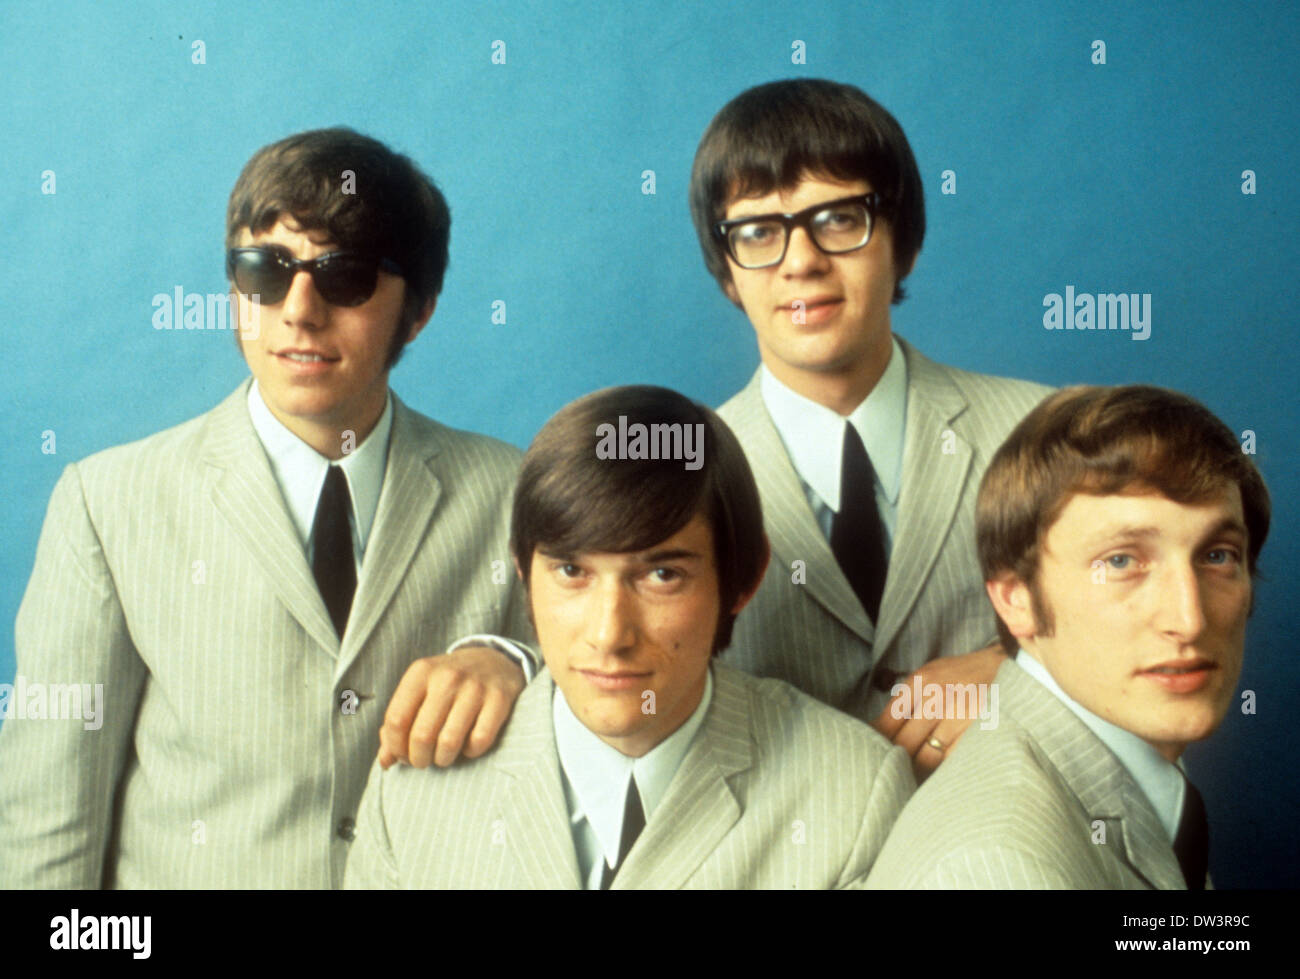 Vanity Fare Uk Pop Group About 1967 Stock Photo, Royalty ...